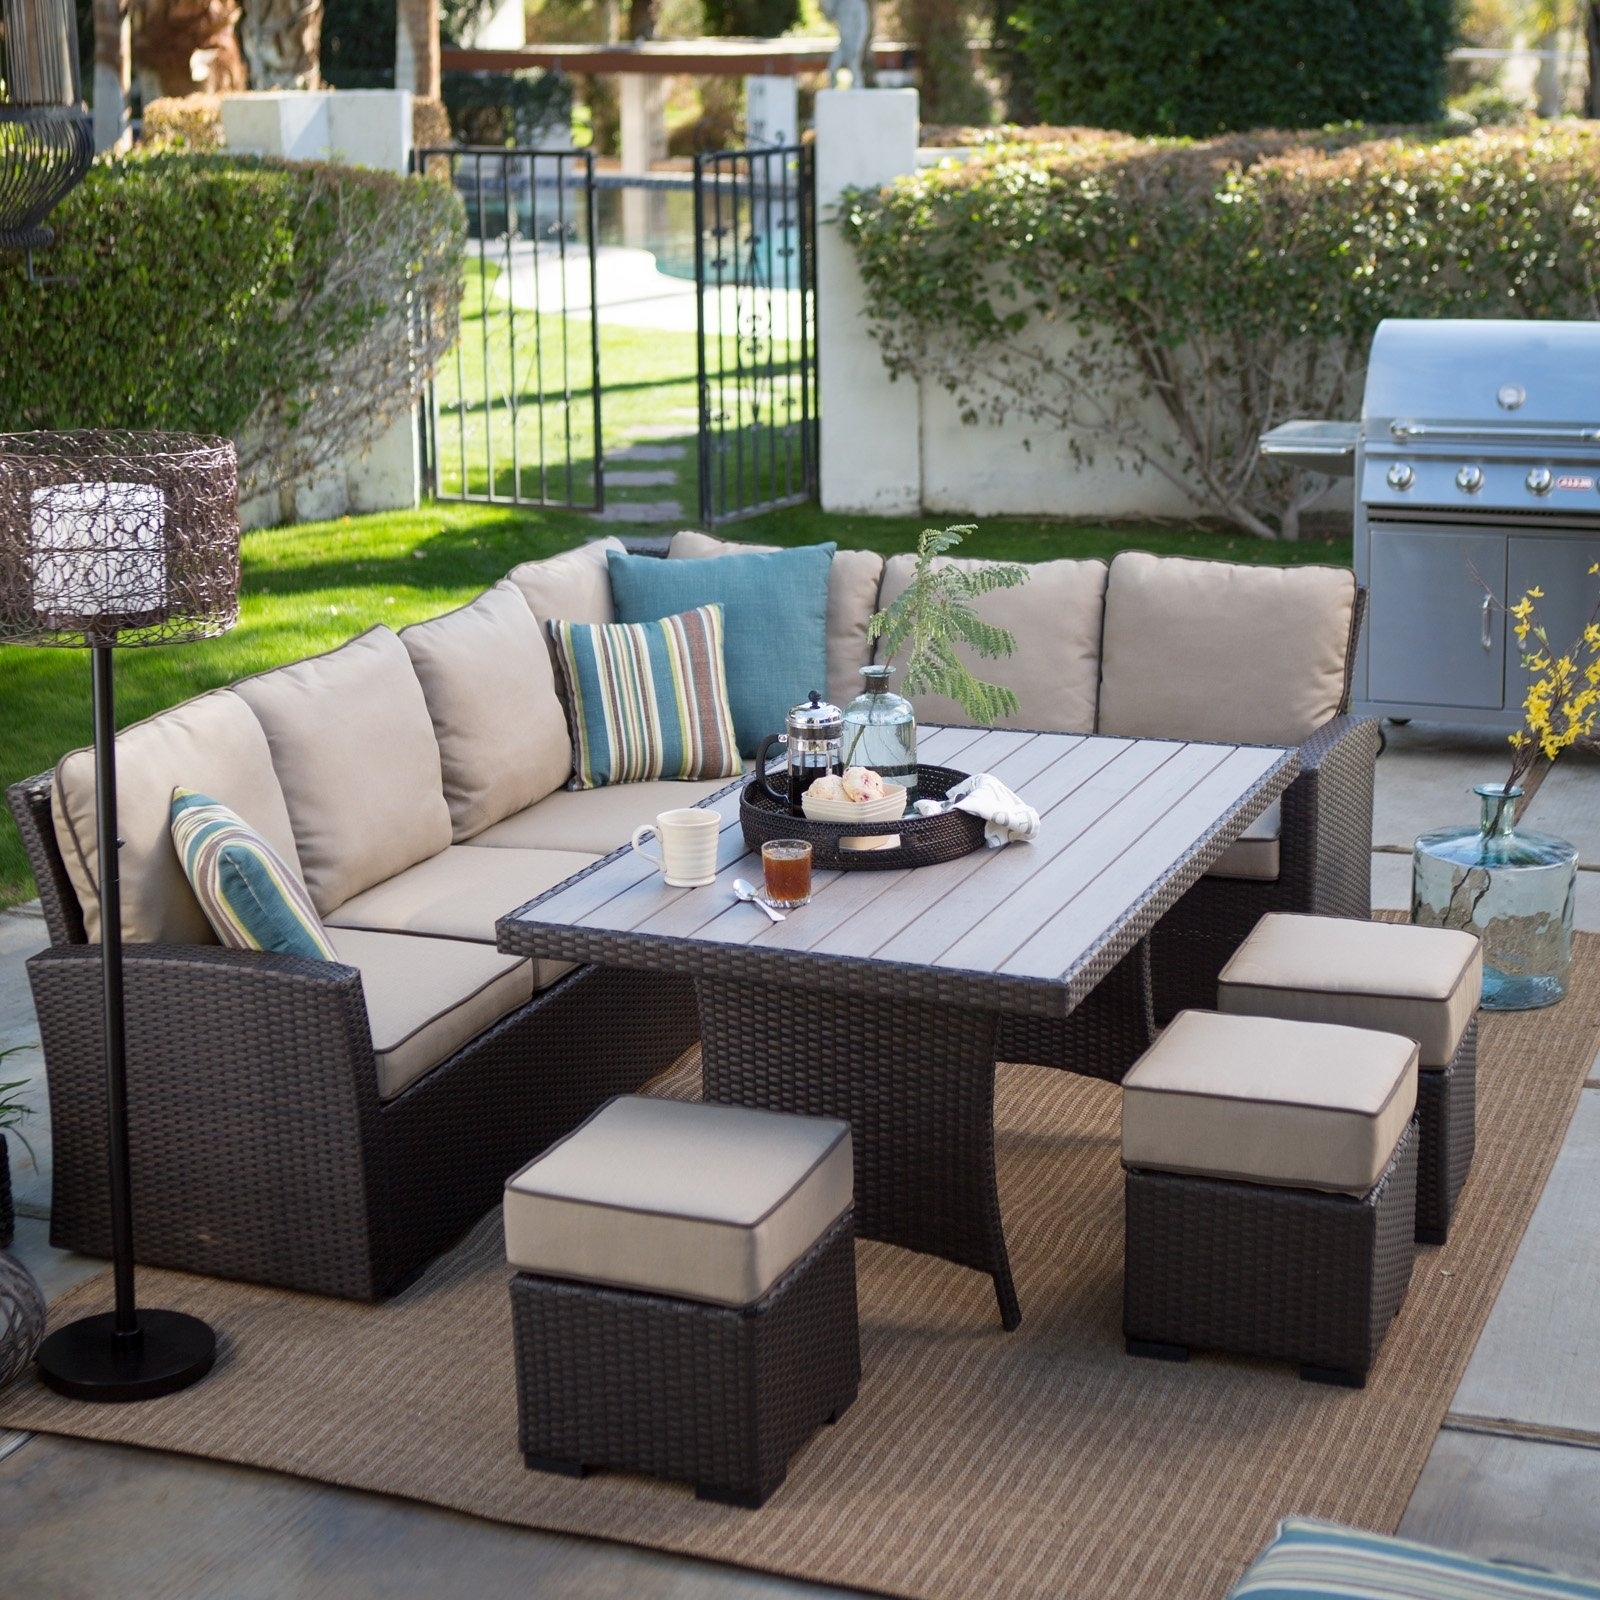 Conversation Patio Sets With Outdoor Sectionals Regarding Most Popular Belham Living Monticello All Weather Wicker Sofa Sectional Patio (View 4 of 15)